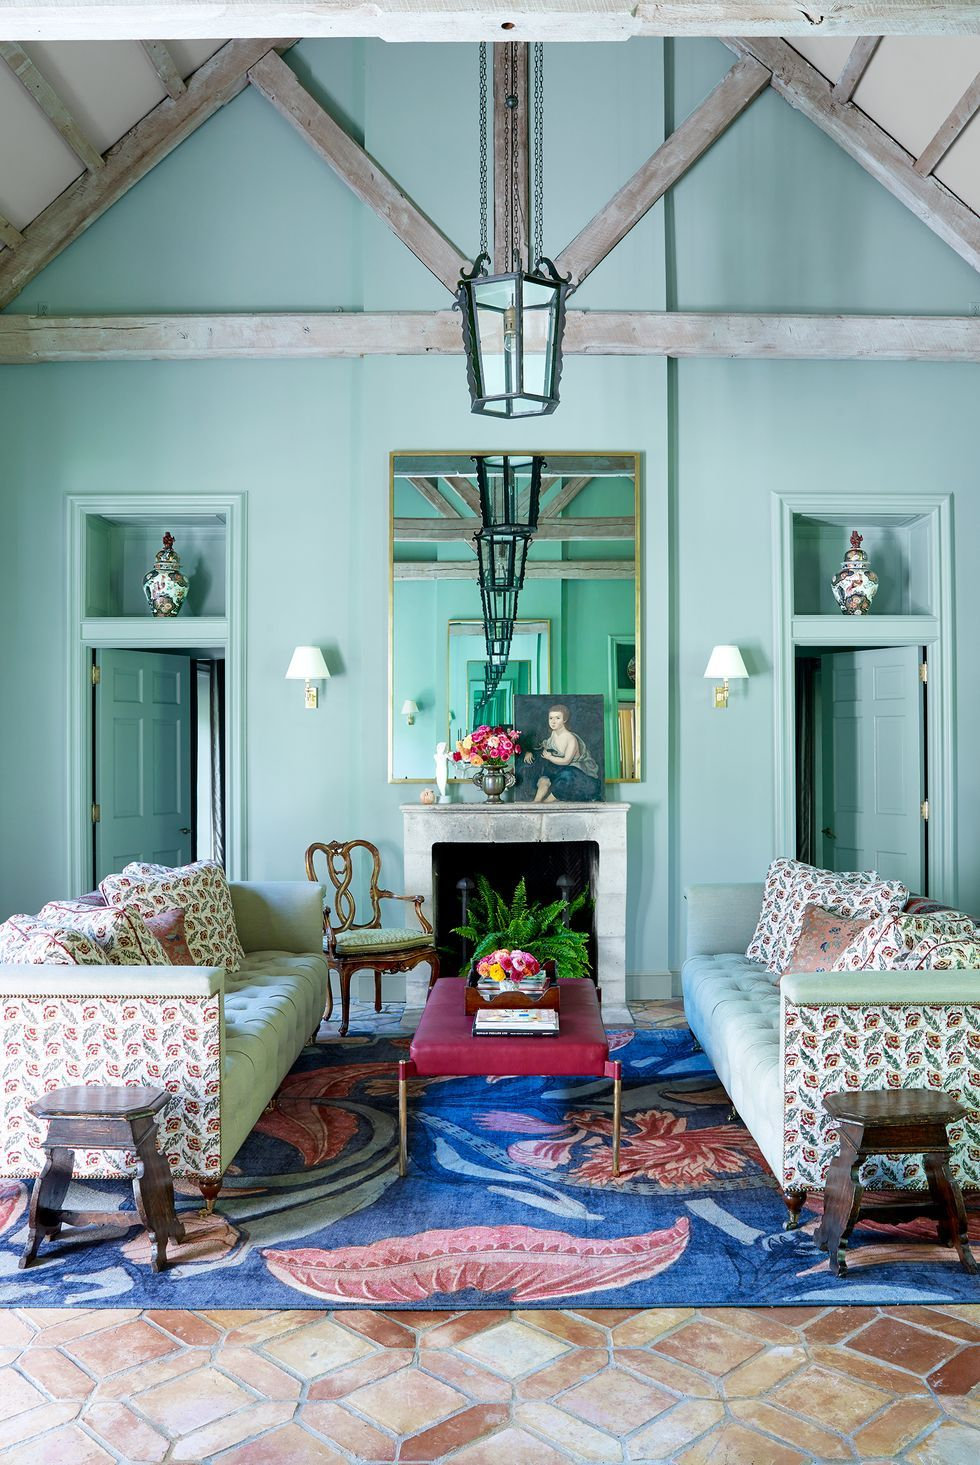 How to choose a color scheme for the rooms of your home